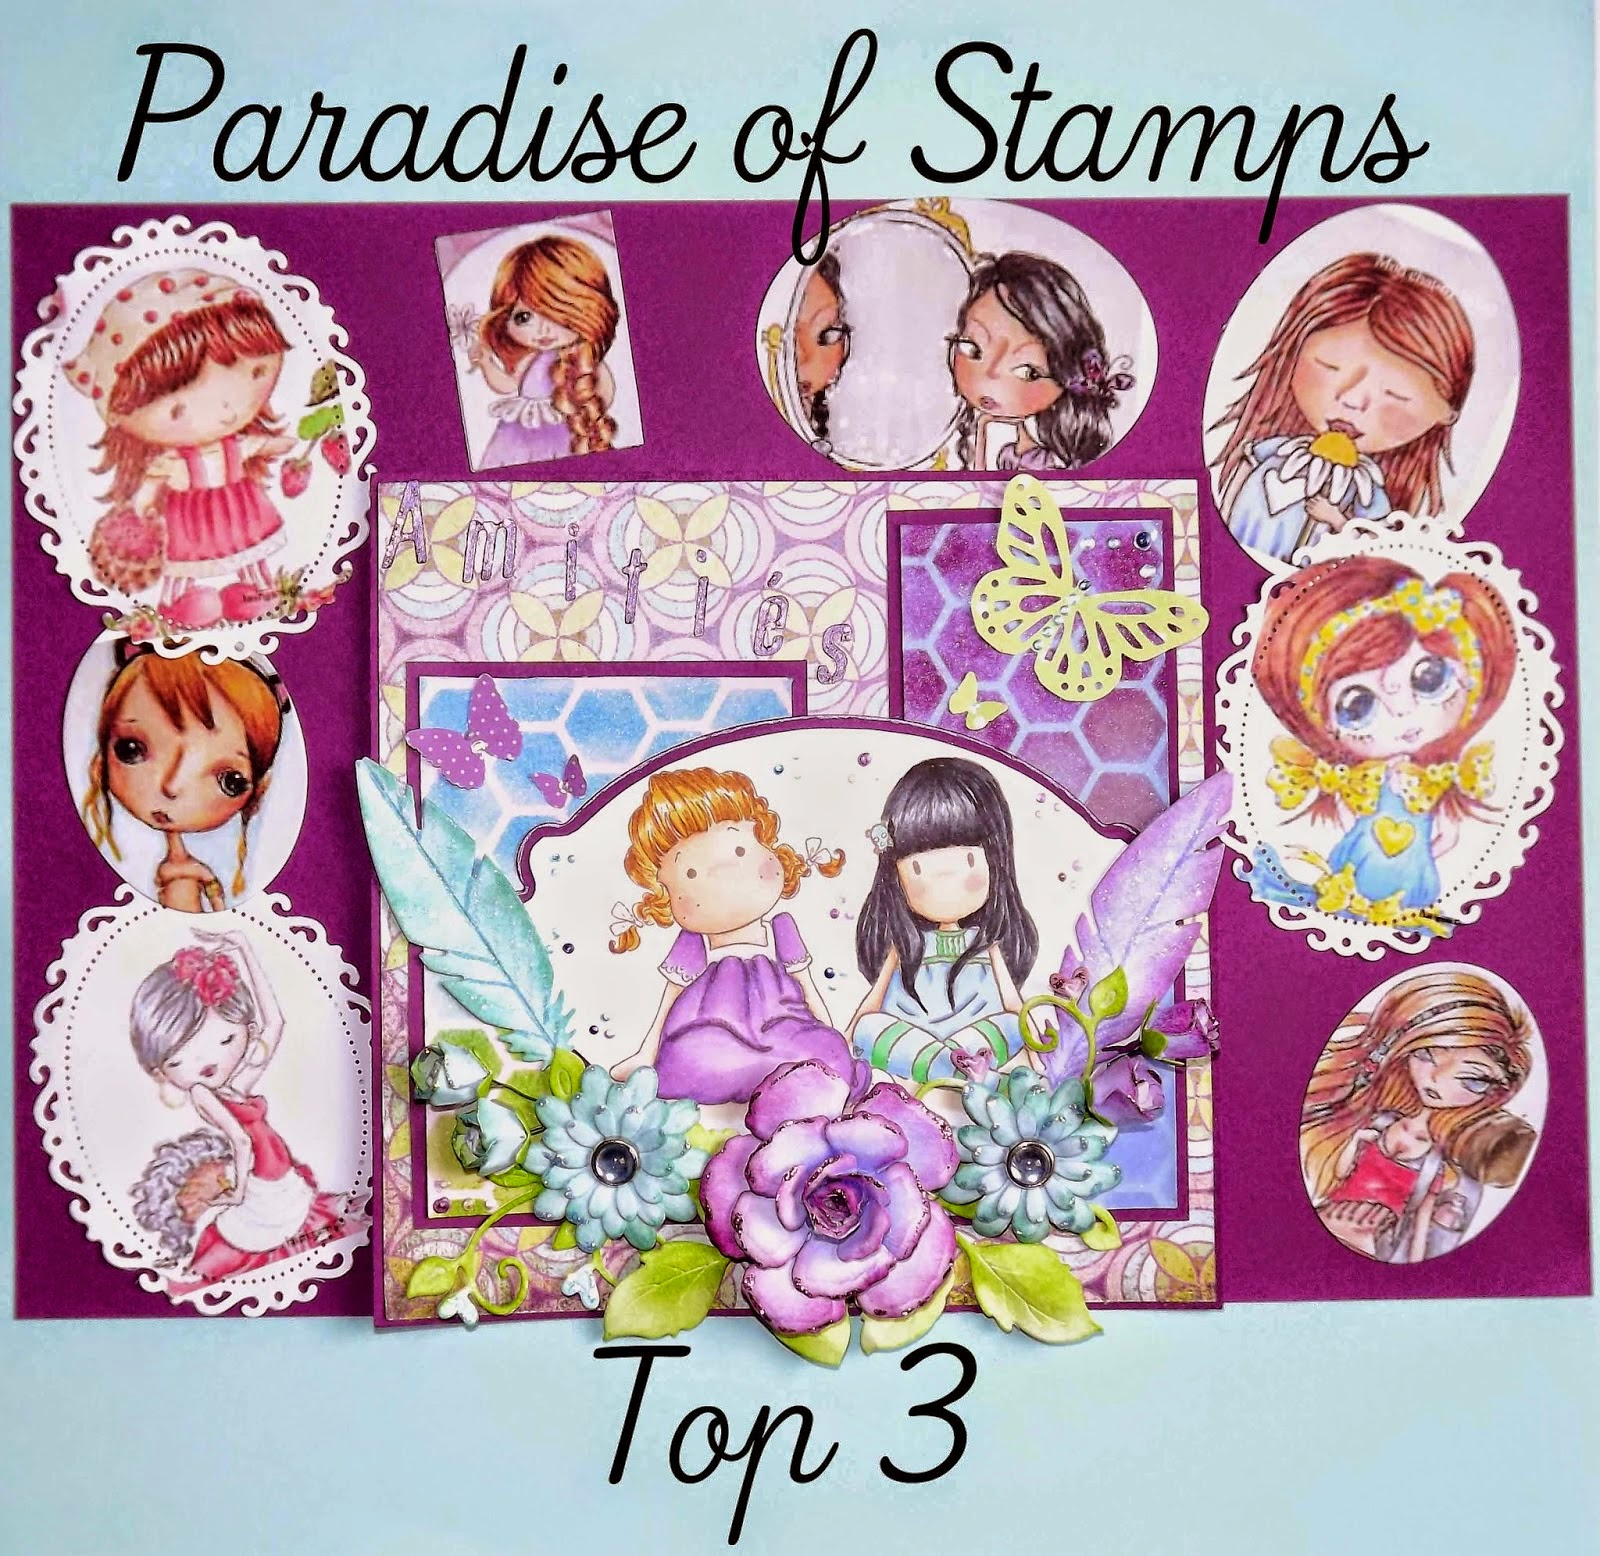 http://paradiseofstamps.blogspot.com/2015/04/winner-and-top-3-challenge-15.html